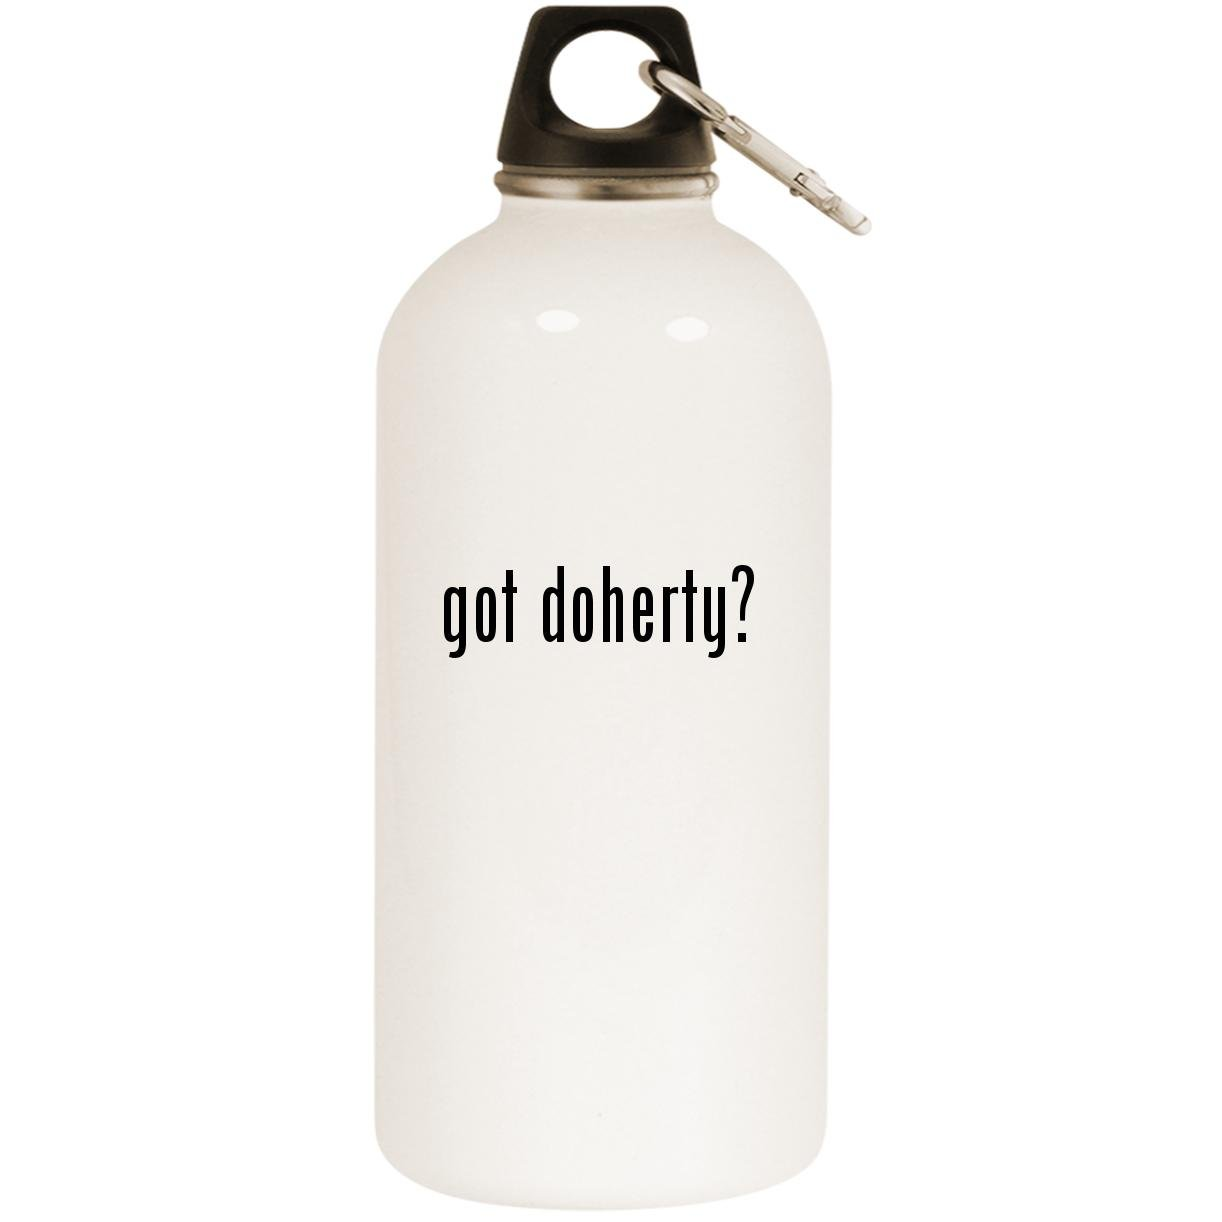 got doherty? - White 20oz Stainless Steel Water Bottle with Carabiner